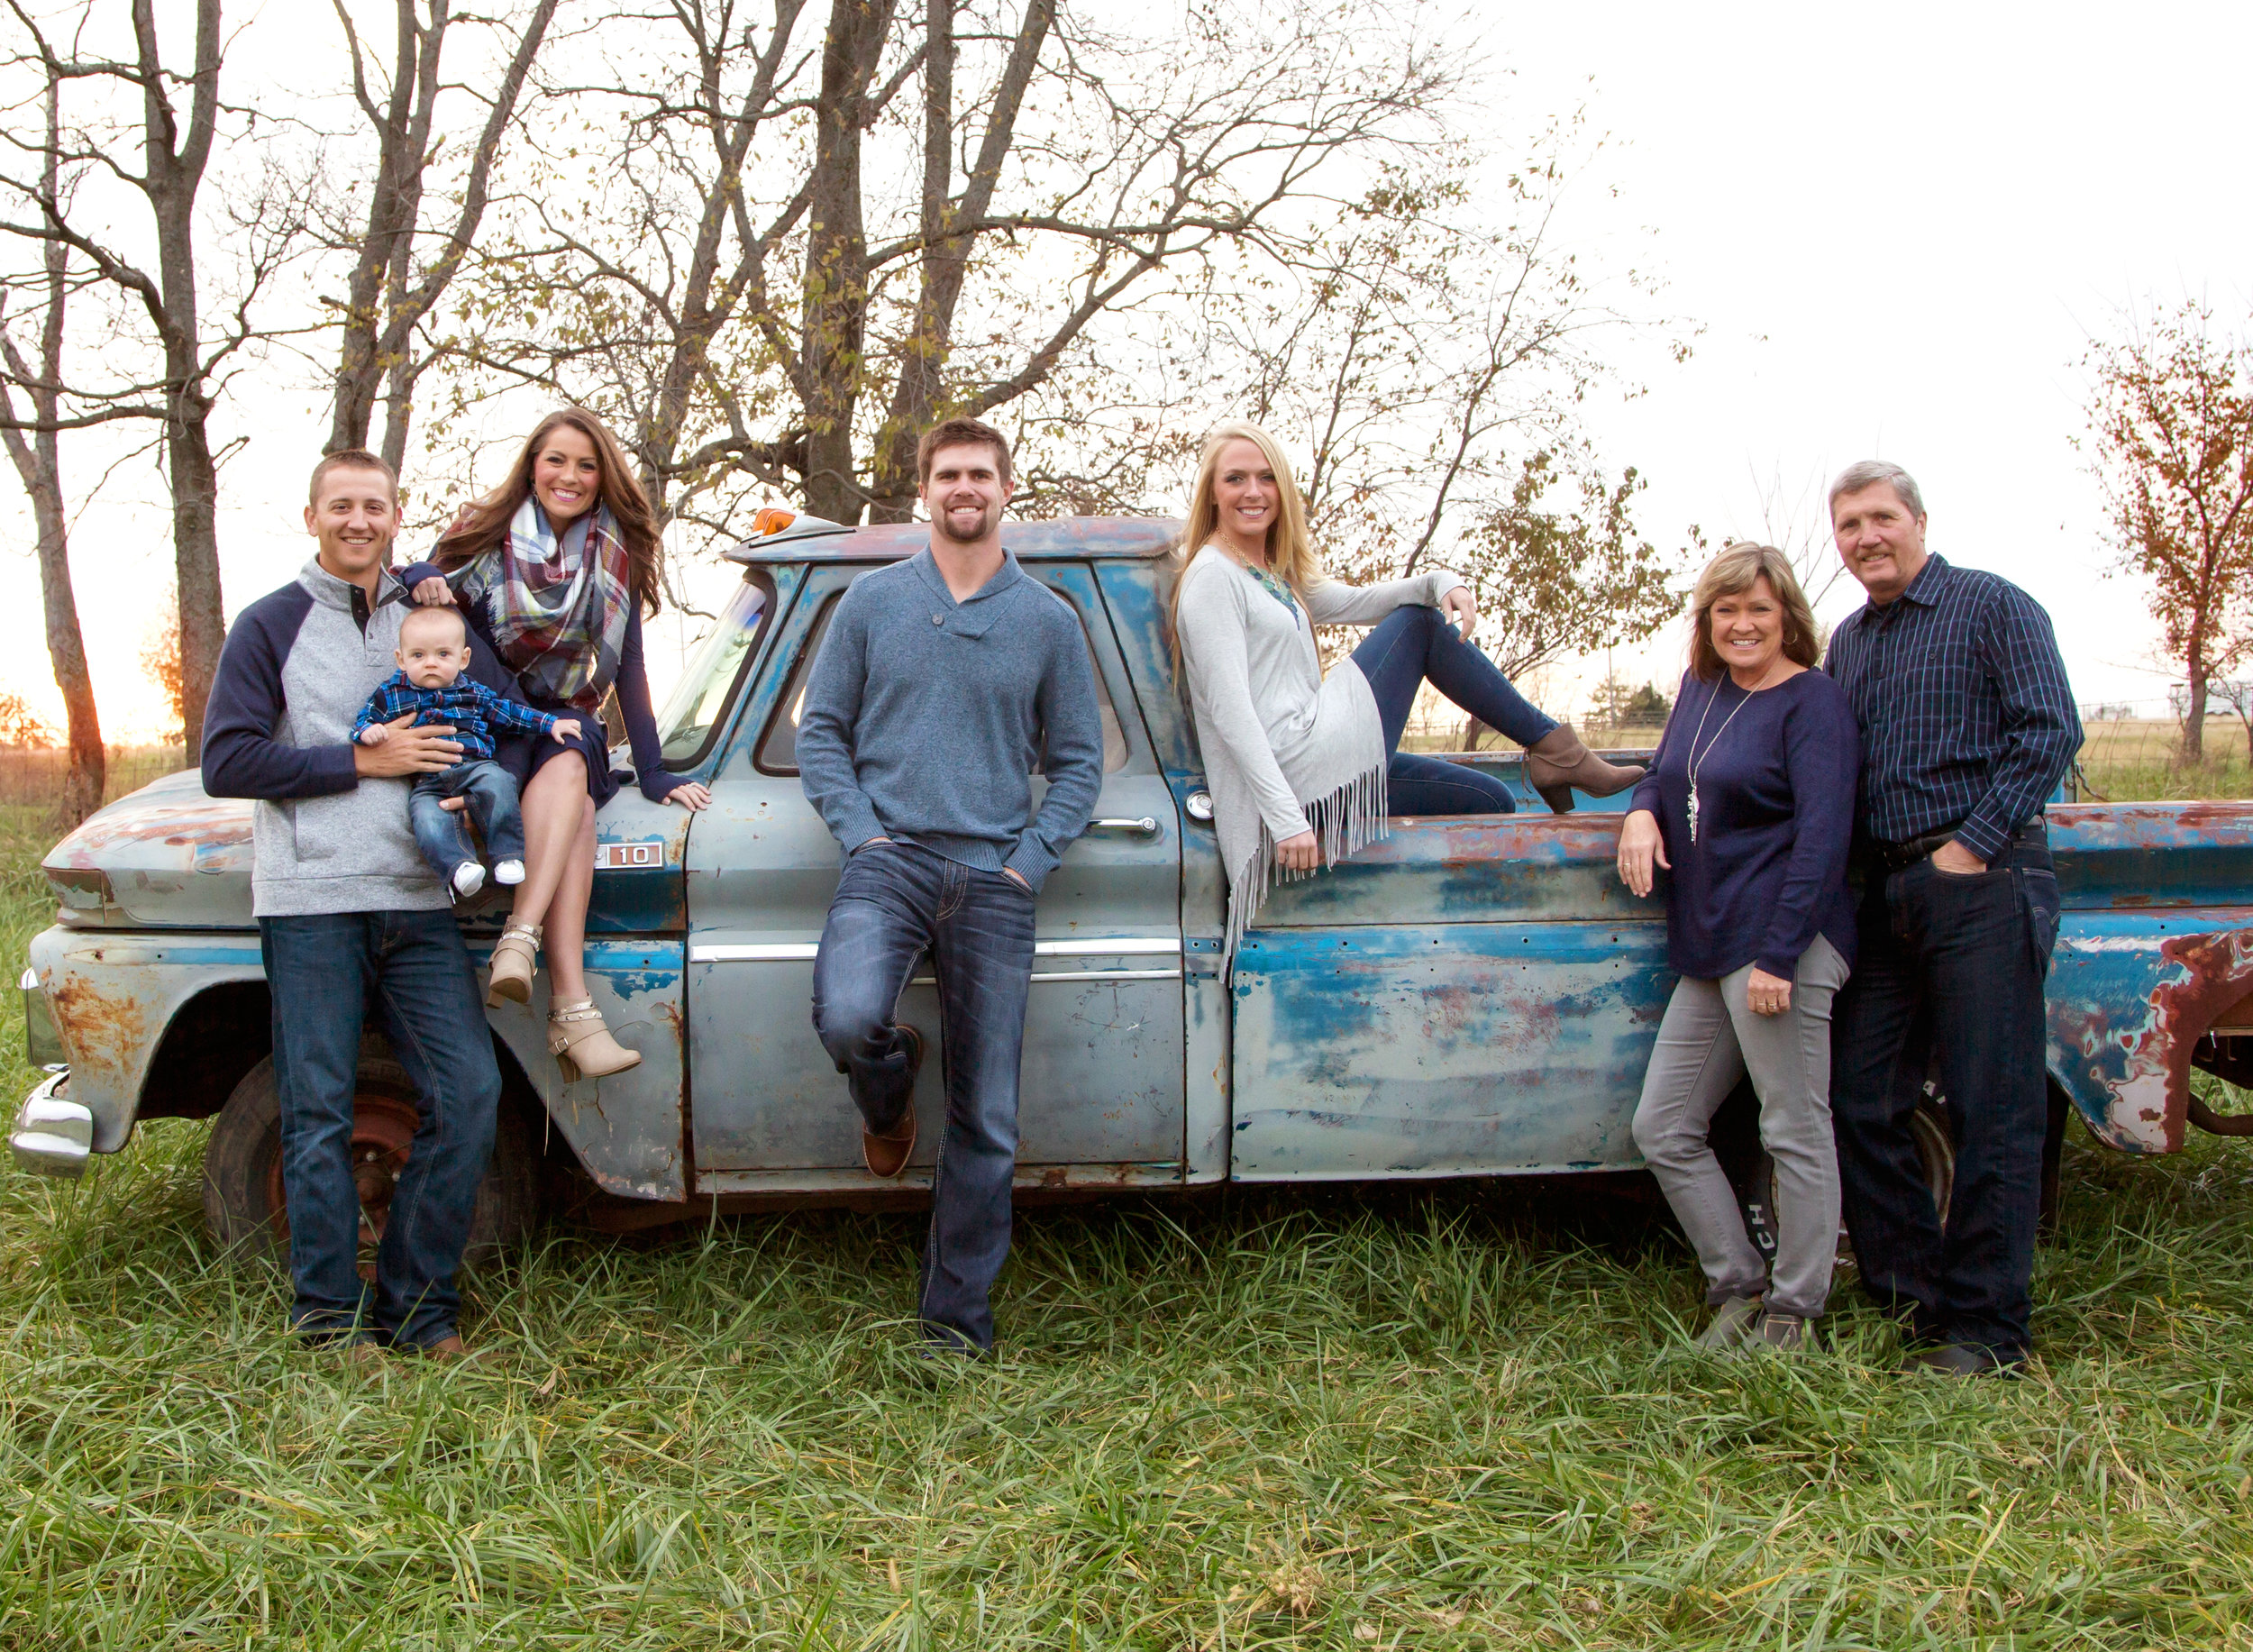 vintage truck family photos - large family photos - kansas city family pictures - kansas city photographer - best family photos - pictures in johnson county kansas - large family with chevy truck - outdoor fall family photos